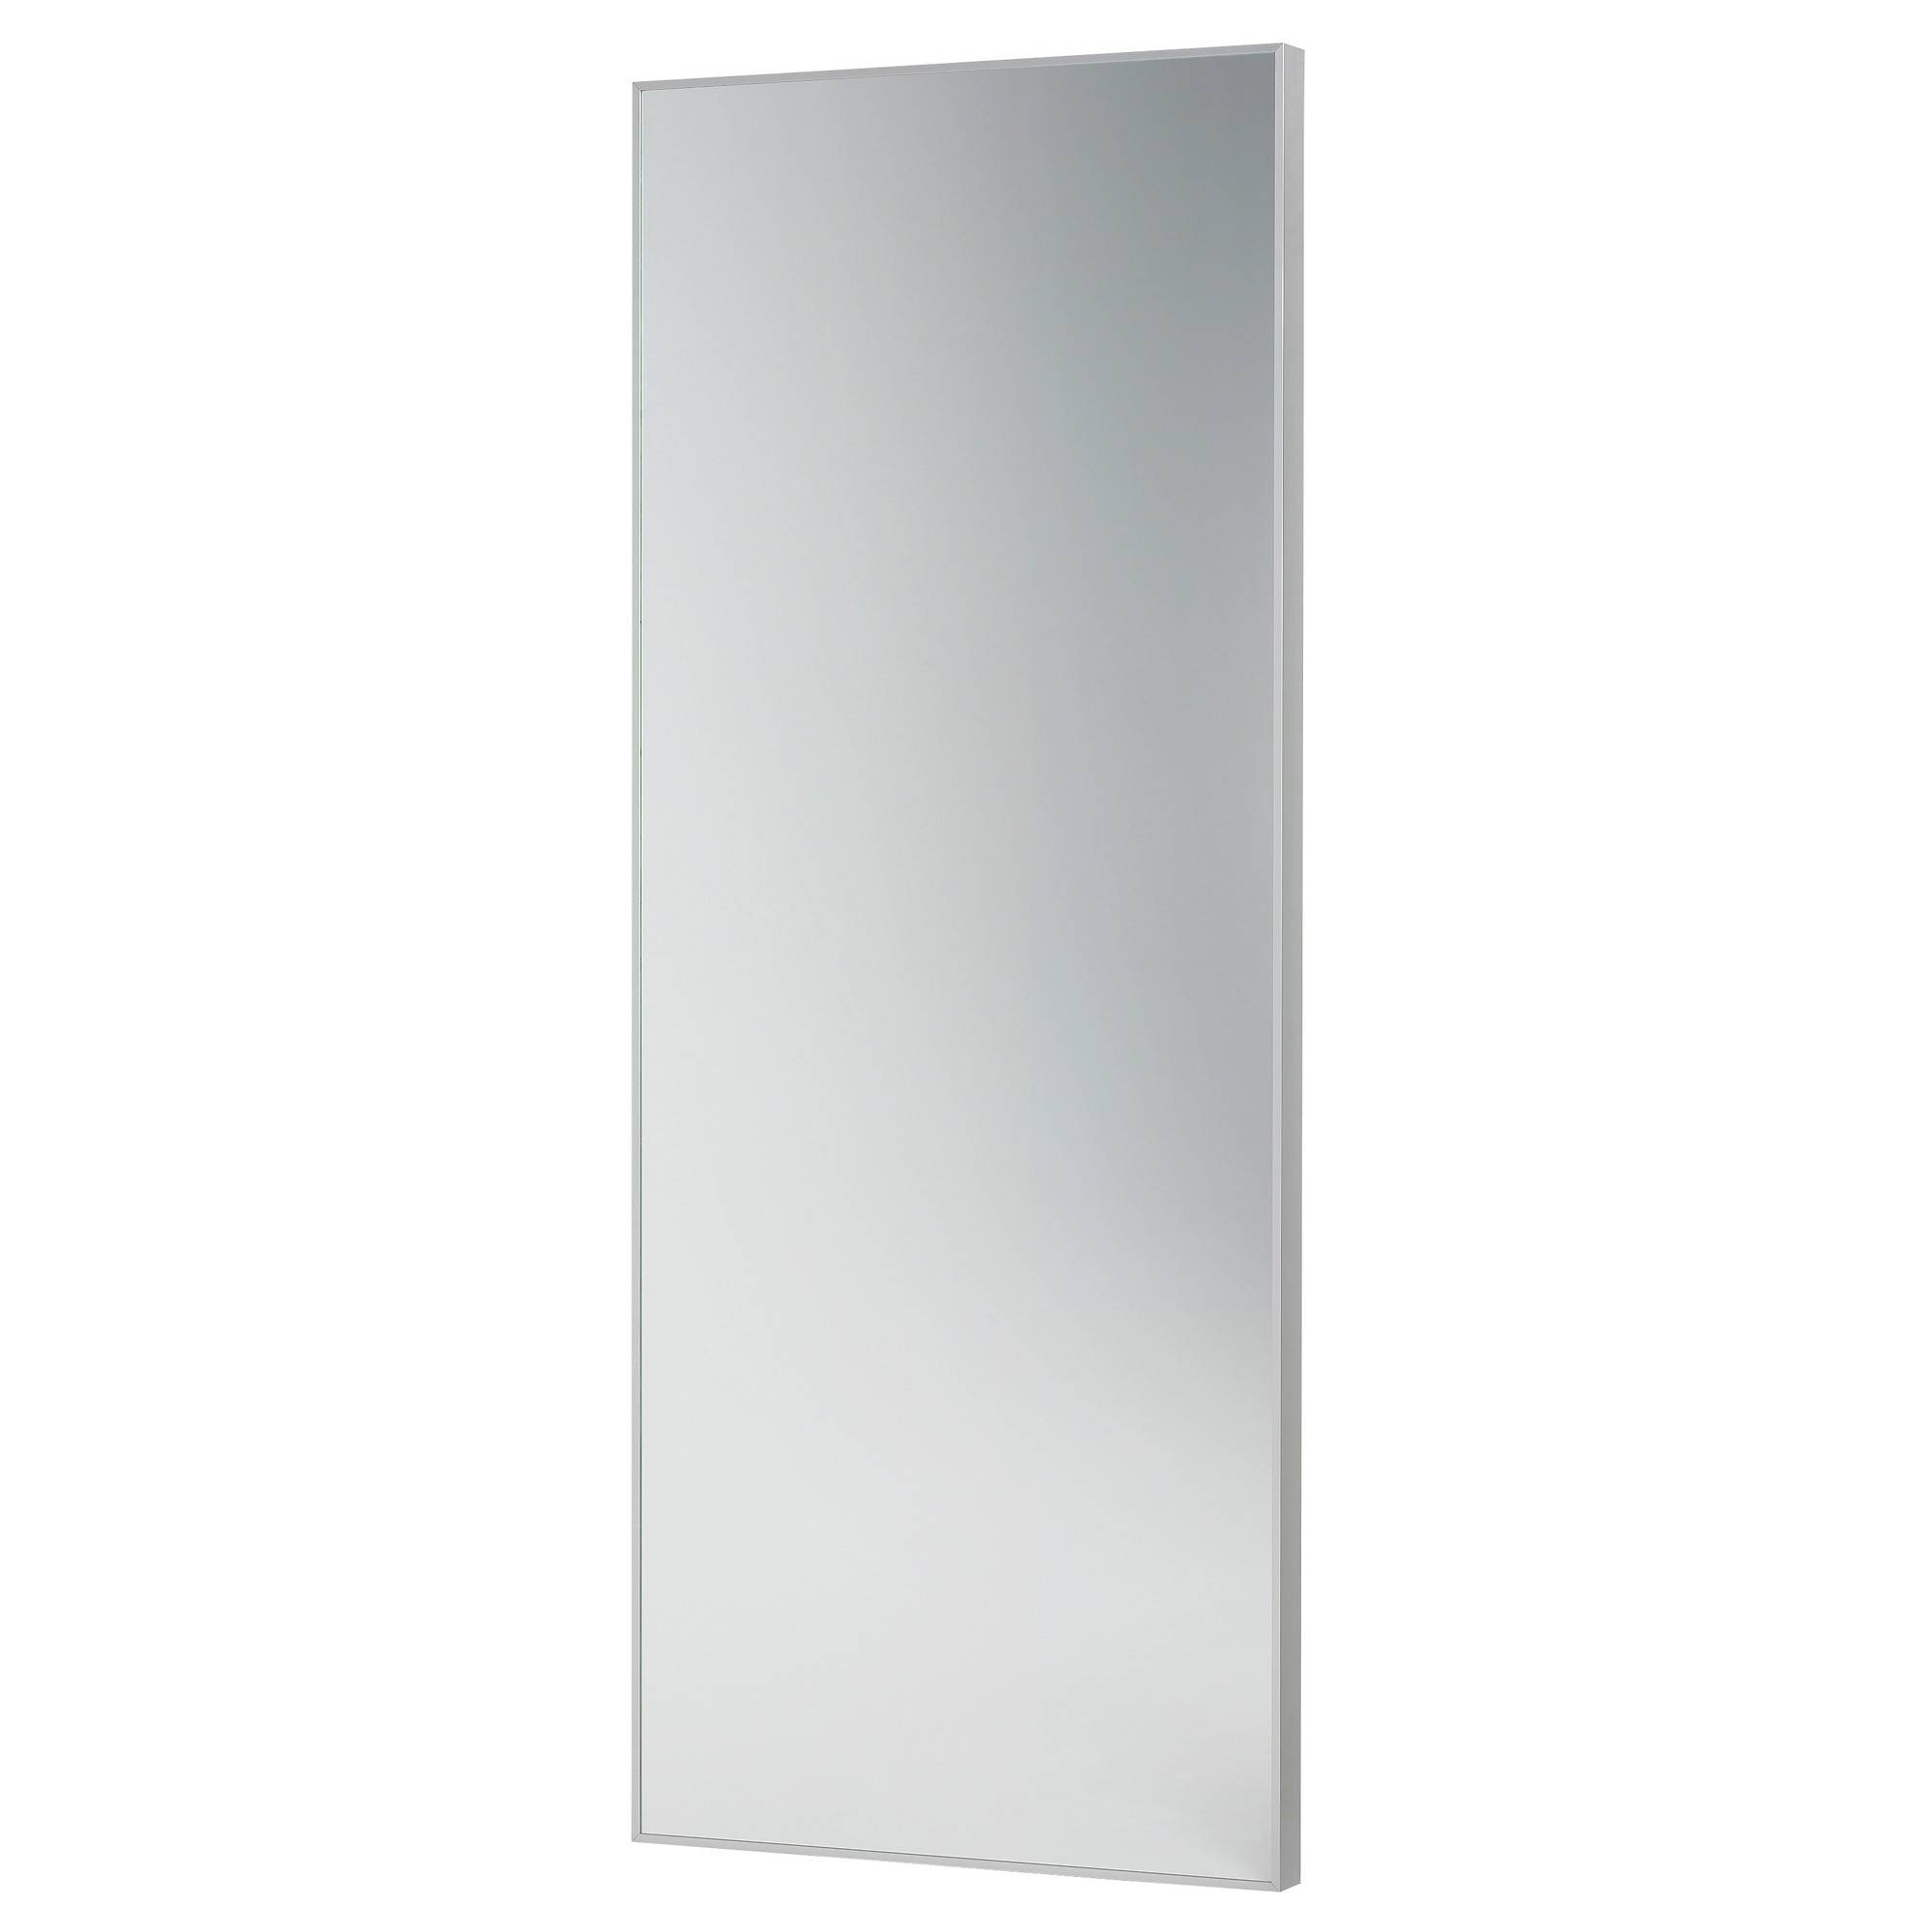 Full-Length Mirrors - Ikea within White Metal Mirrors (Image 13 of 25)